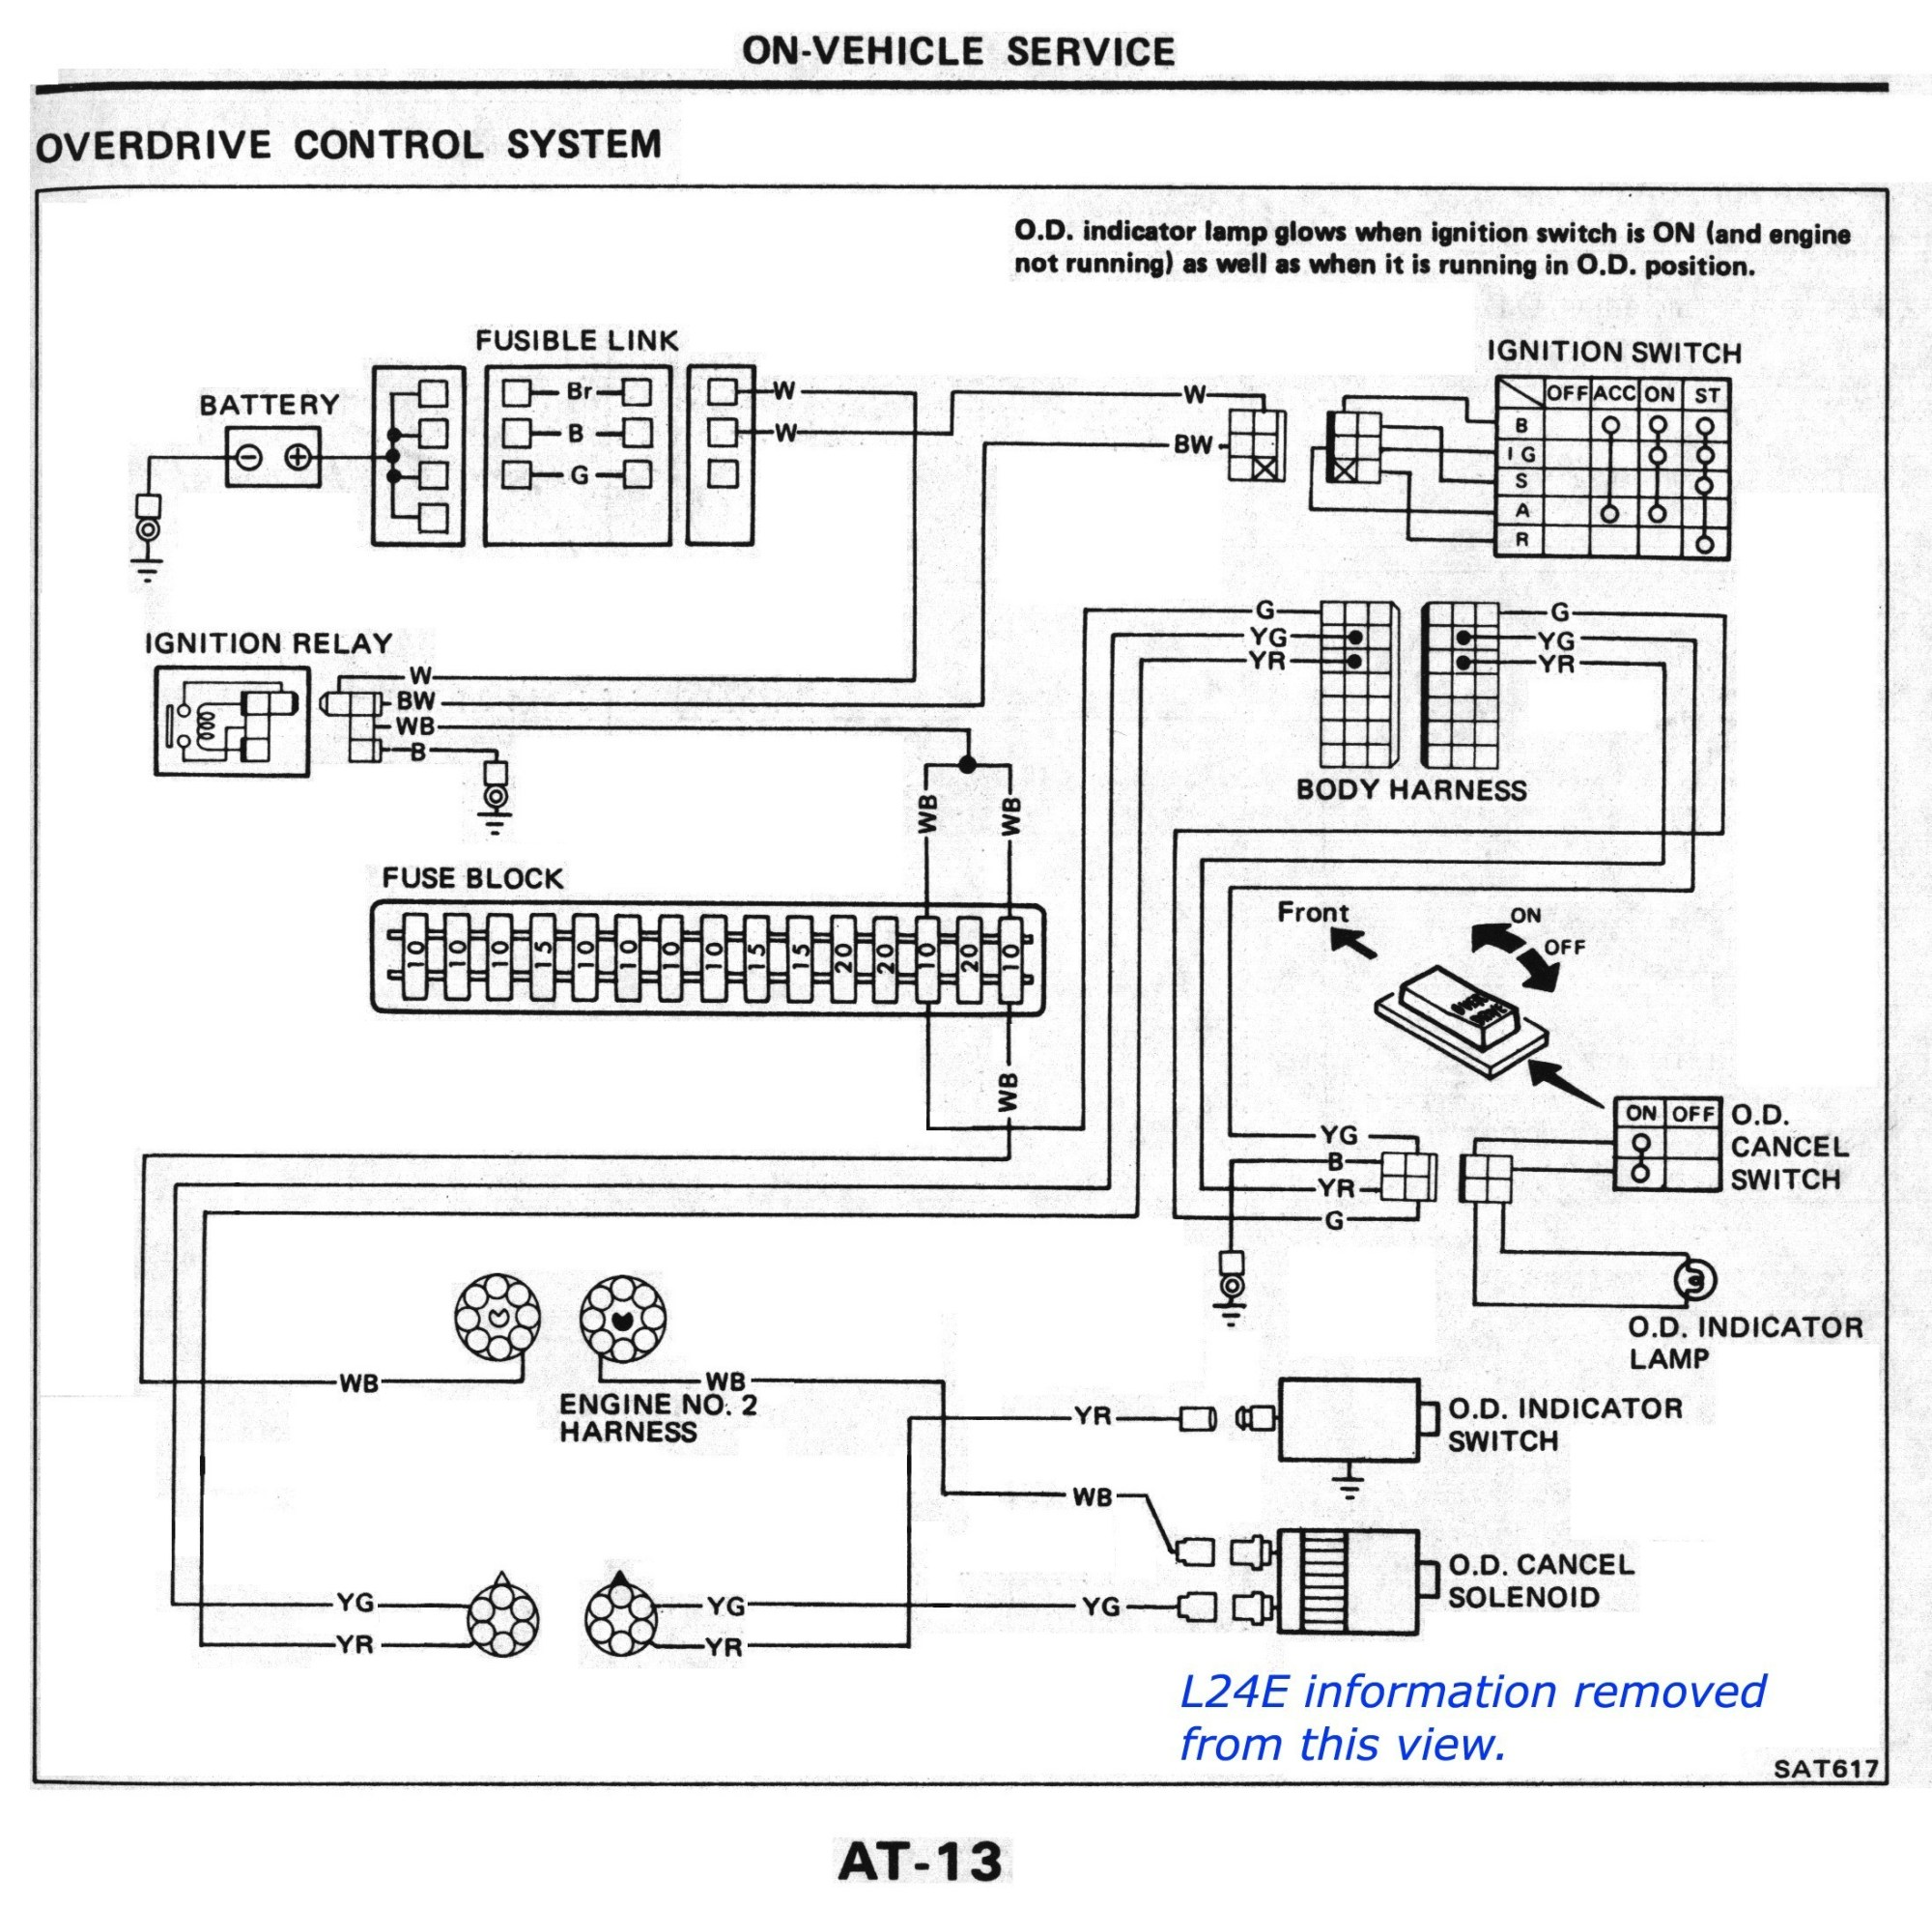 hight resolution of 1983 chevy truck wiring diagram car reverse light wiring diagram of 1983 chevy truck wiring diagram